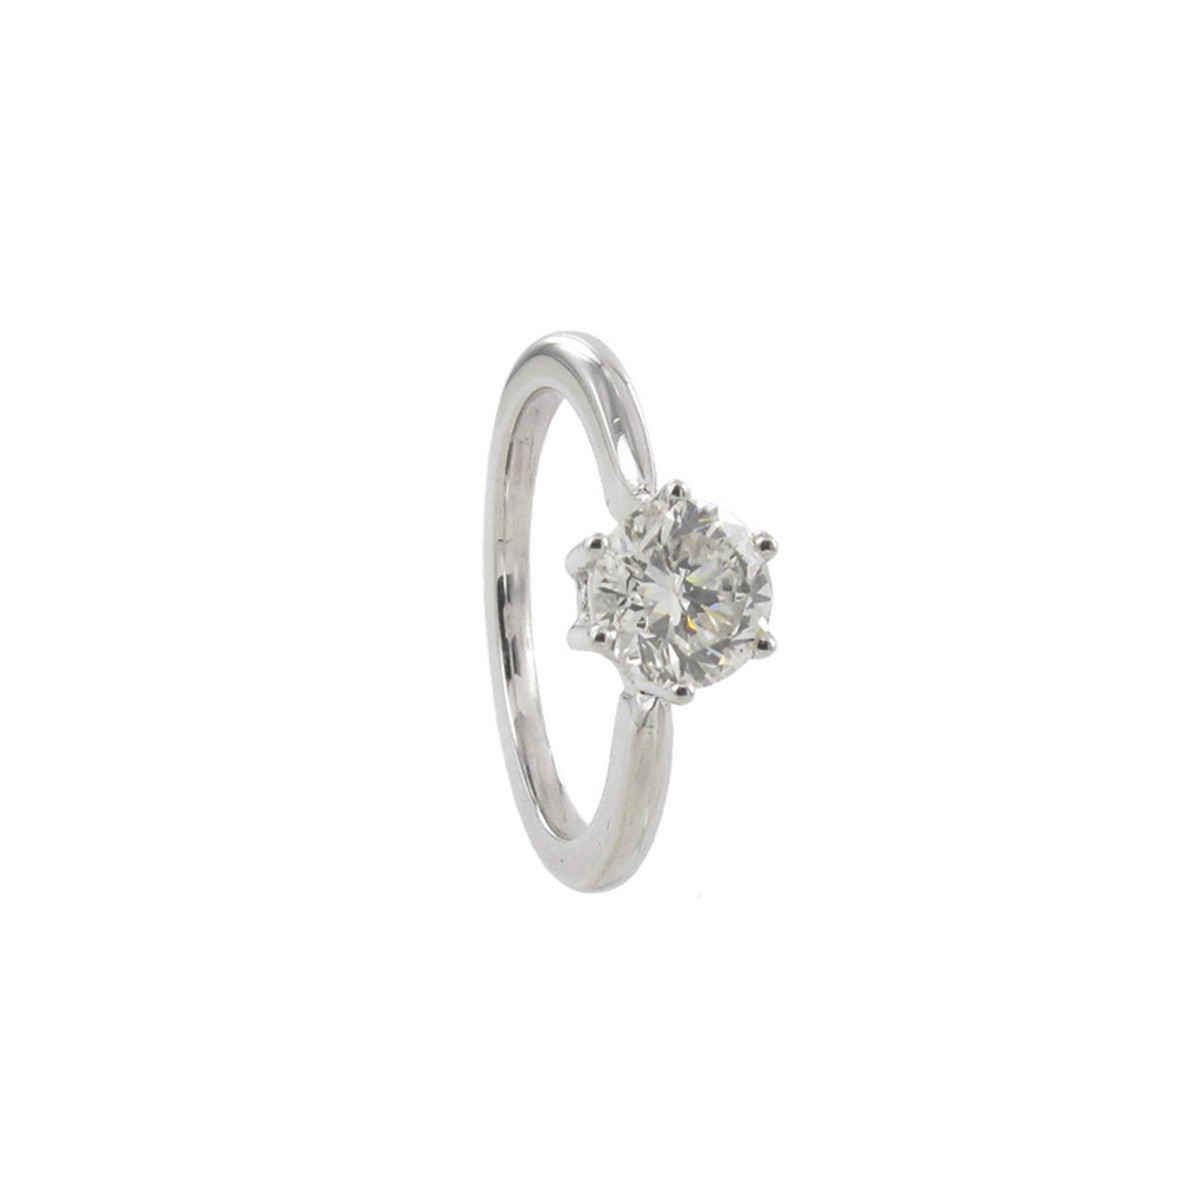 GOLD DIAMOND SOLITAIRE WITH 6 CLAWS